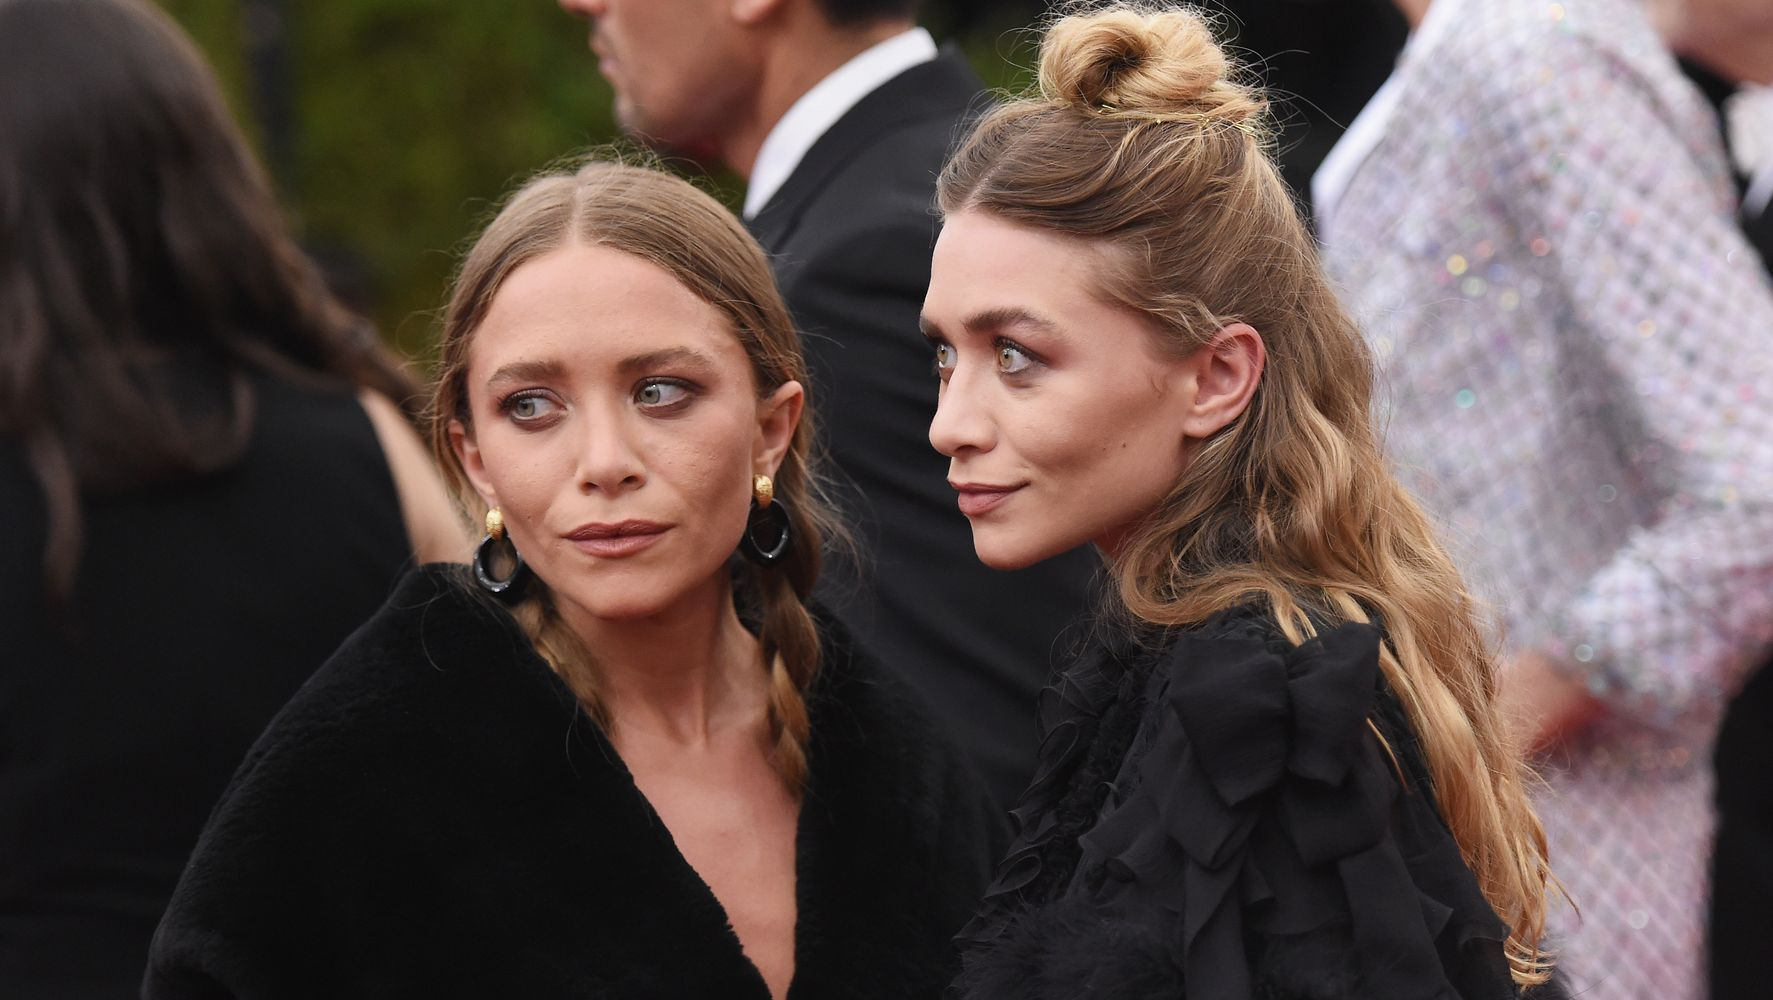 This Is How 'Fuller House' Will Explain The The Olsen Twins' Absence